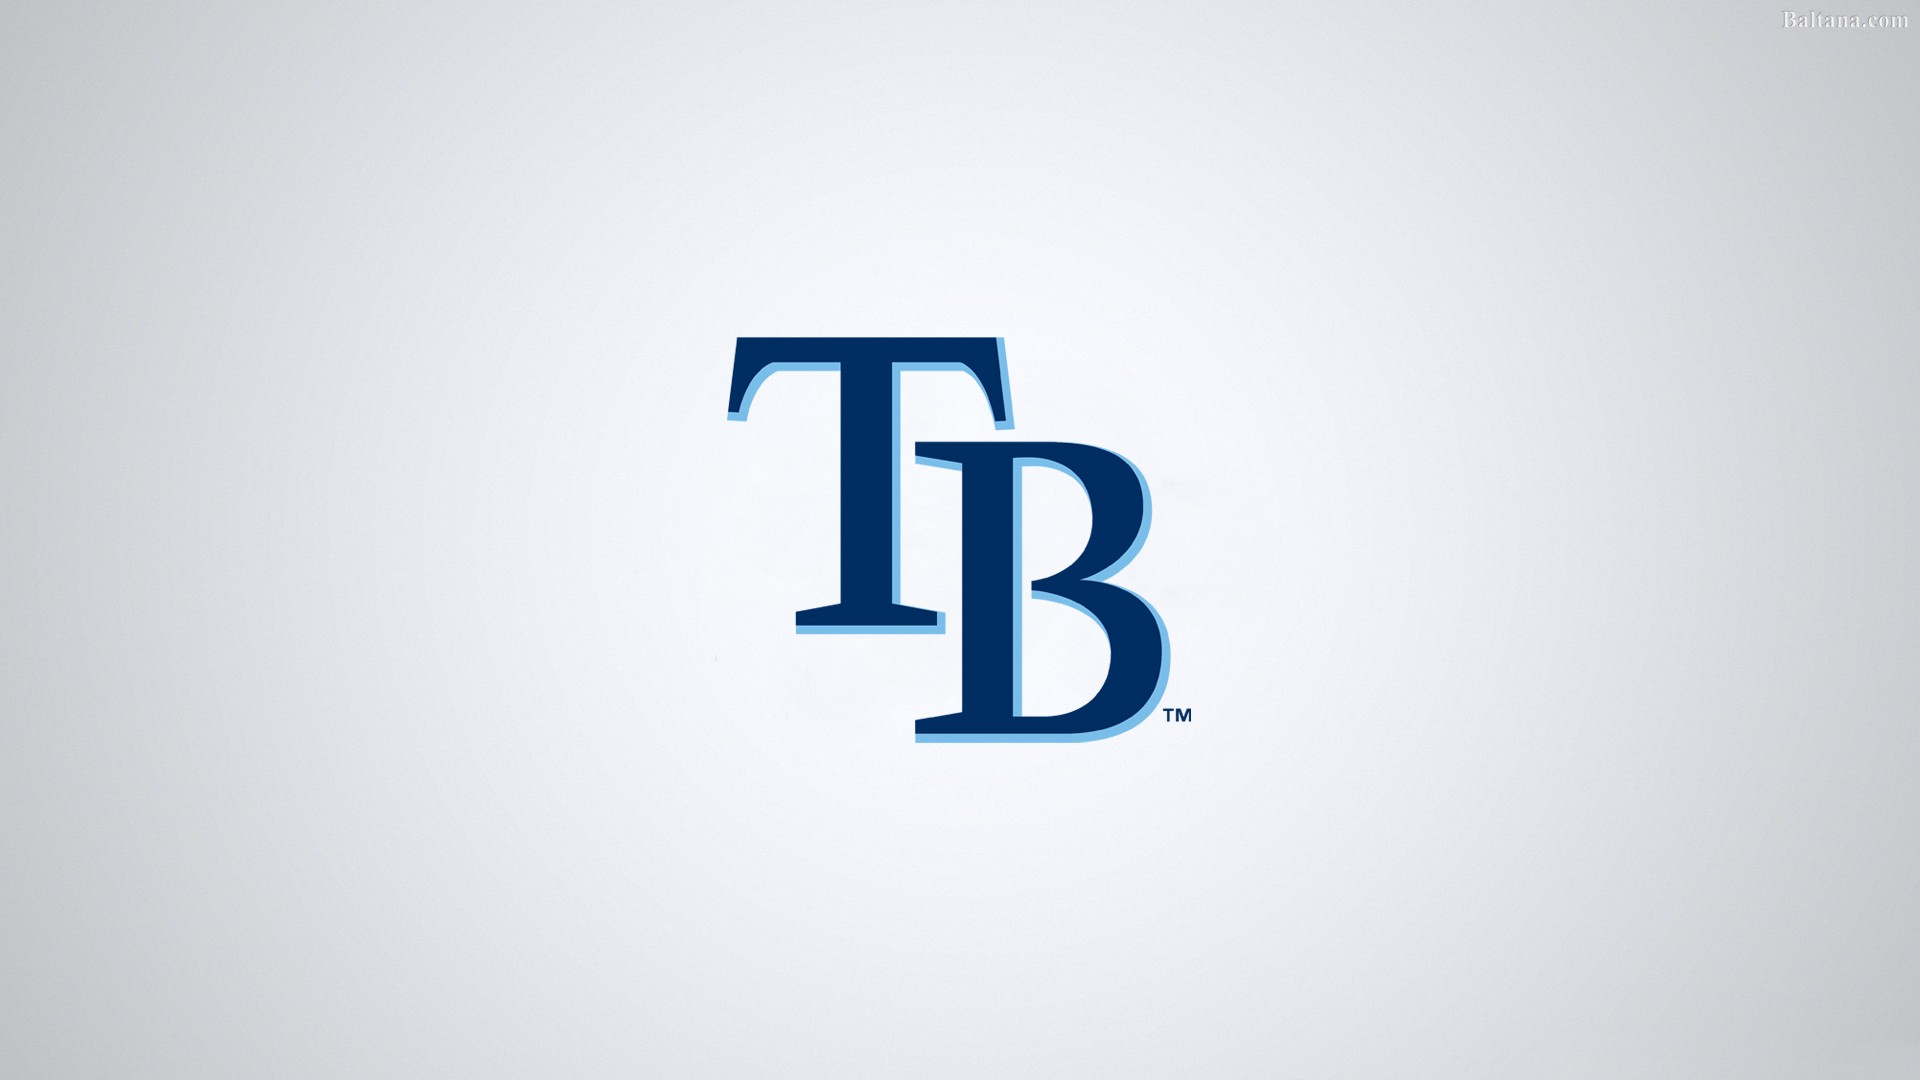 tampa bay rays logo wallpaper posted by christopher anderson tampa bay rays logo wallpaper posted by